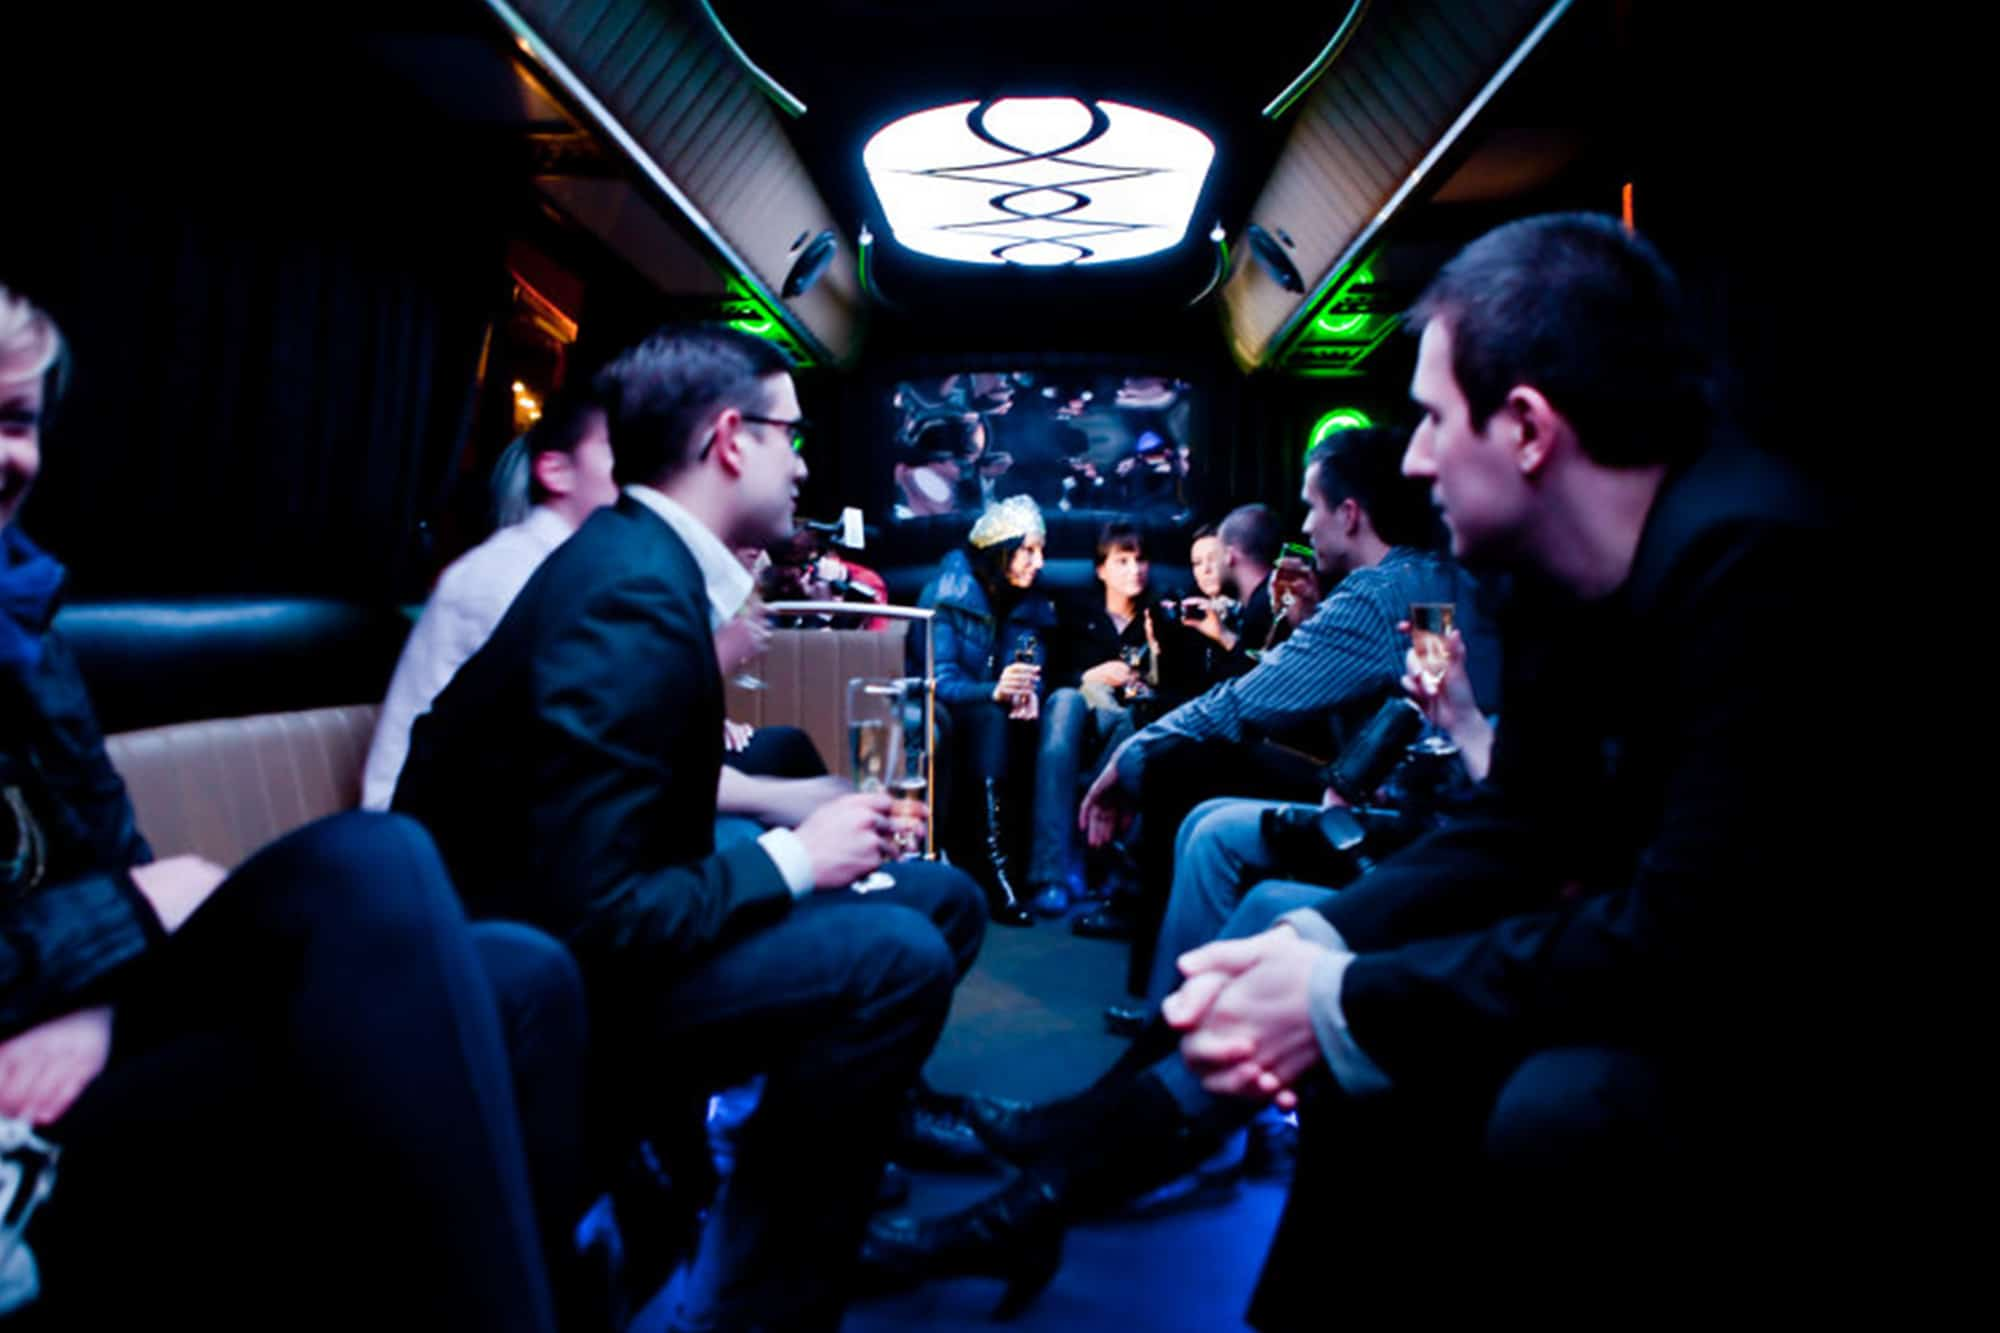 Party Bus Krakow super experience for groups and stags in krakow